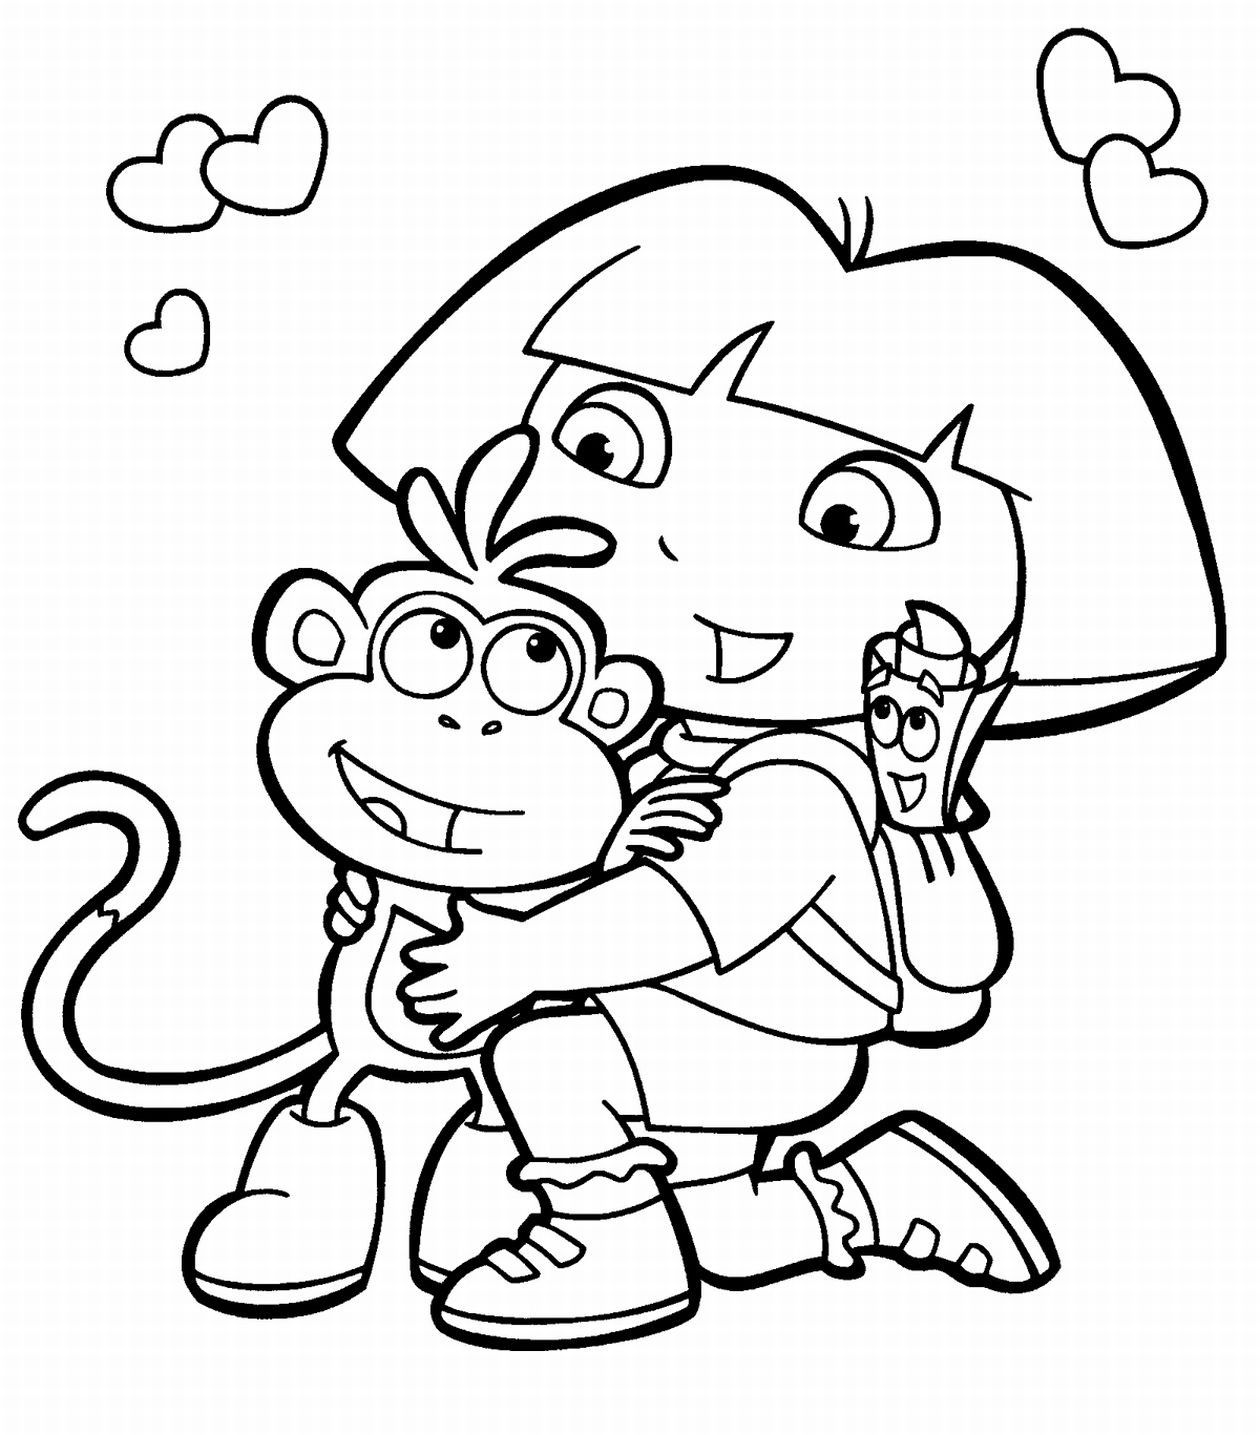 Coloring pages to print for children - Free Kids Printable Coloring Pages Http Freecoloringpage Info Free